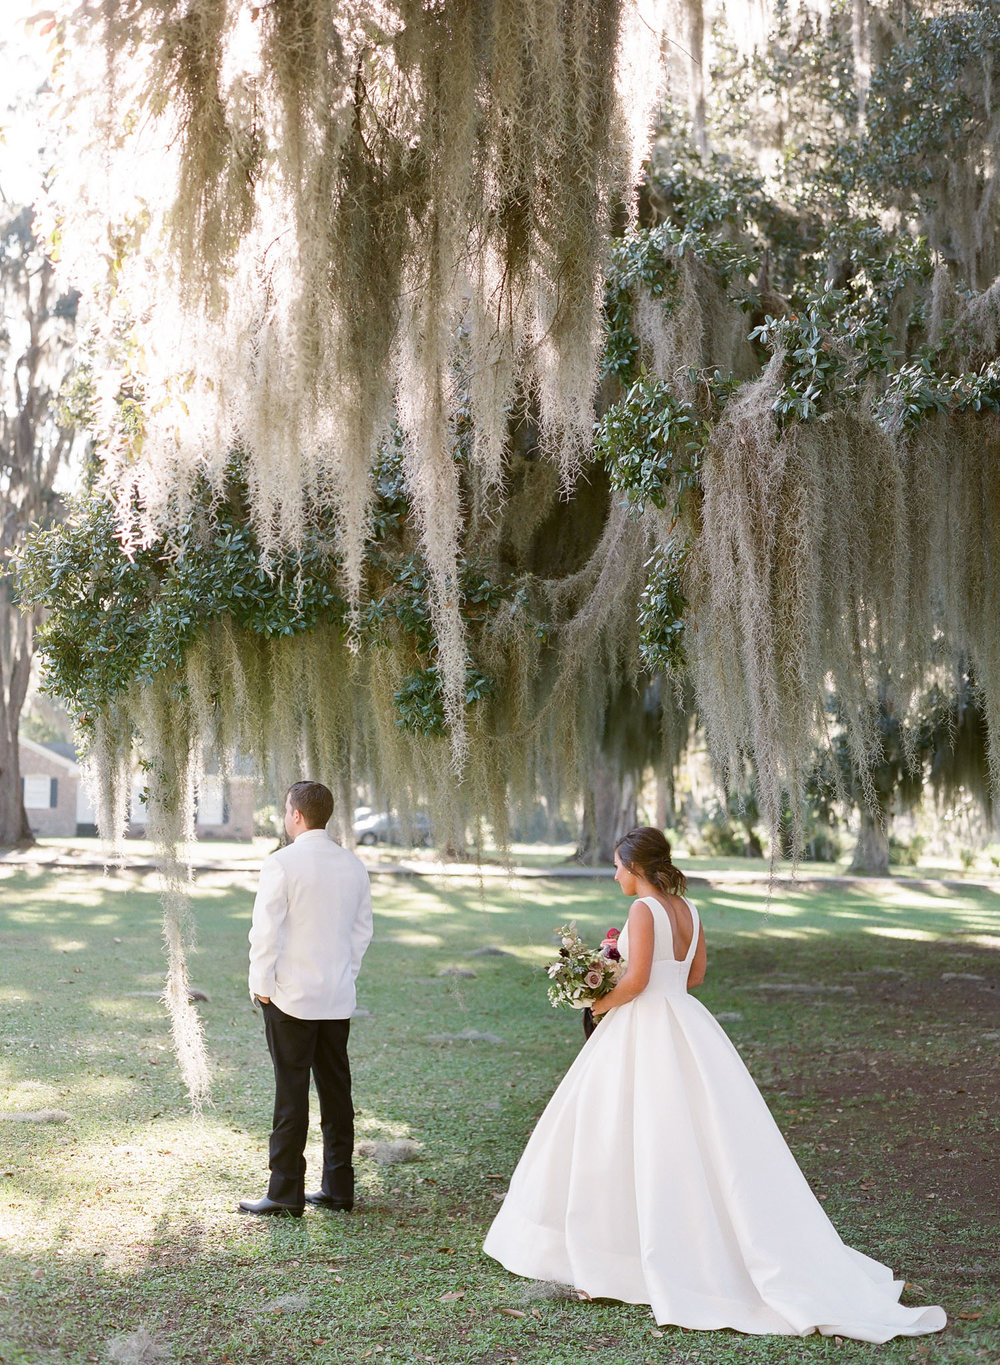 Charleston-Wedding-Photographer-40.jpg